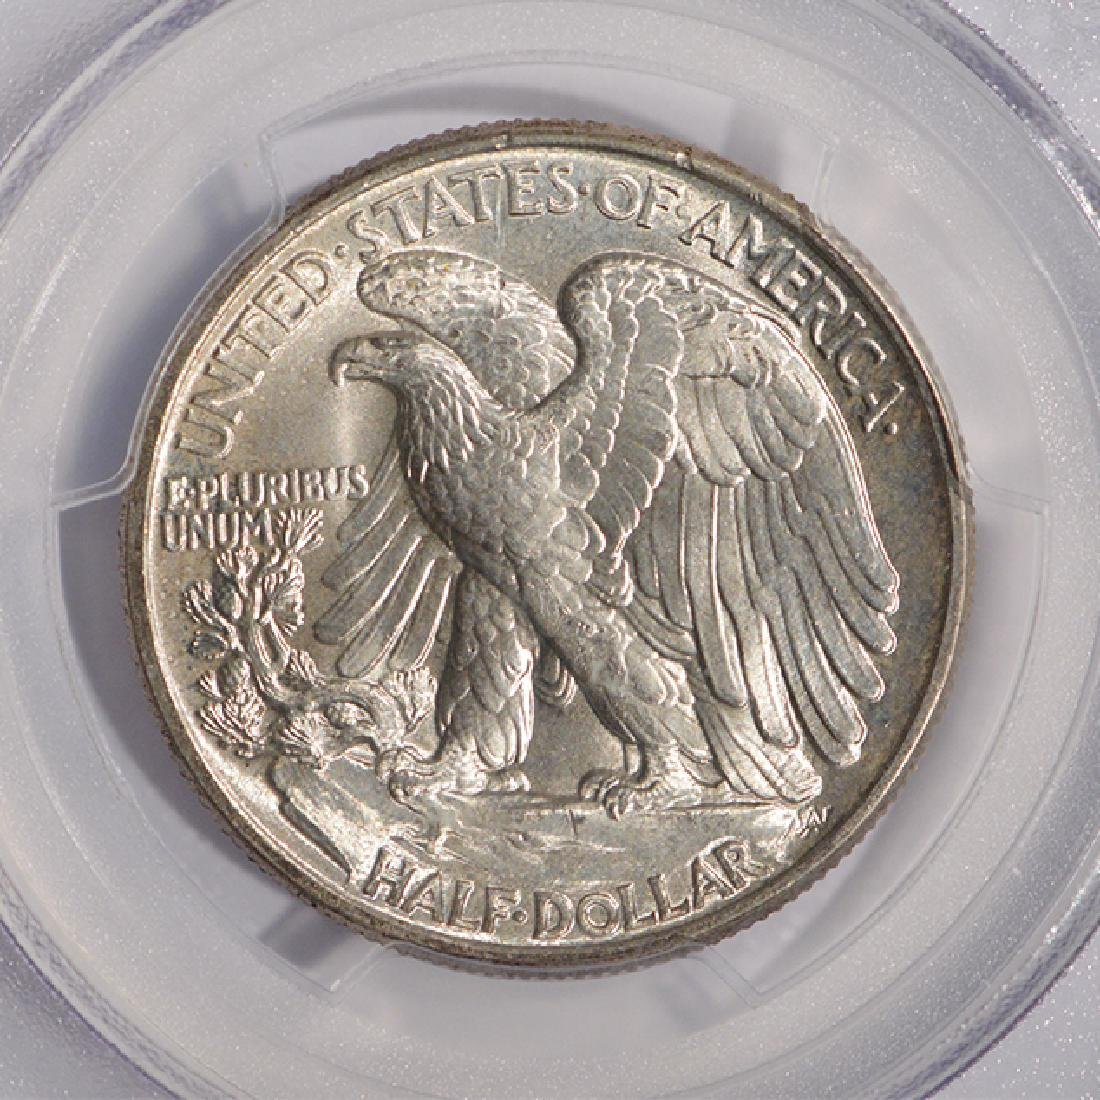 1945 Walking Liberty Half Dollar Coin PCGS MS66 - 4